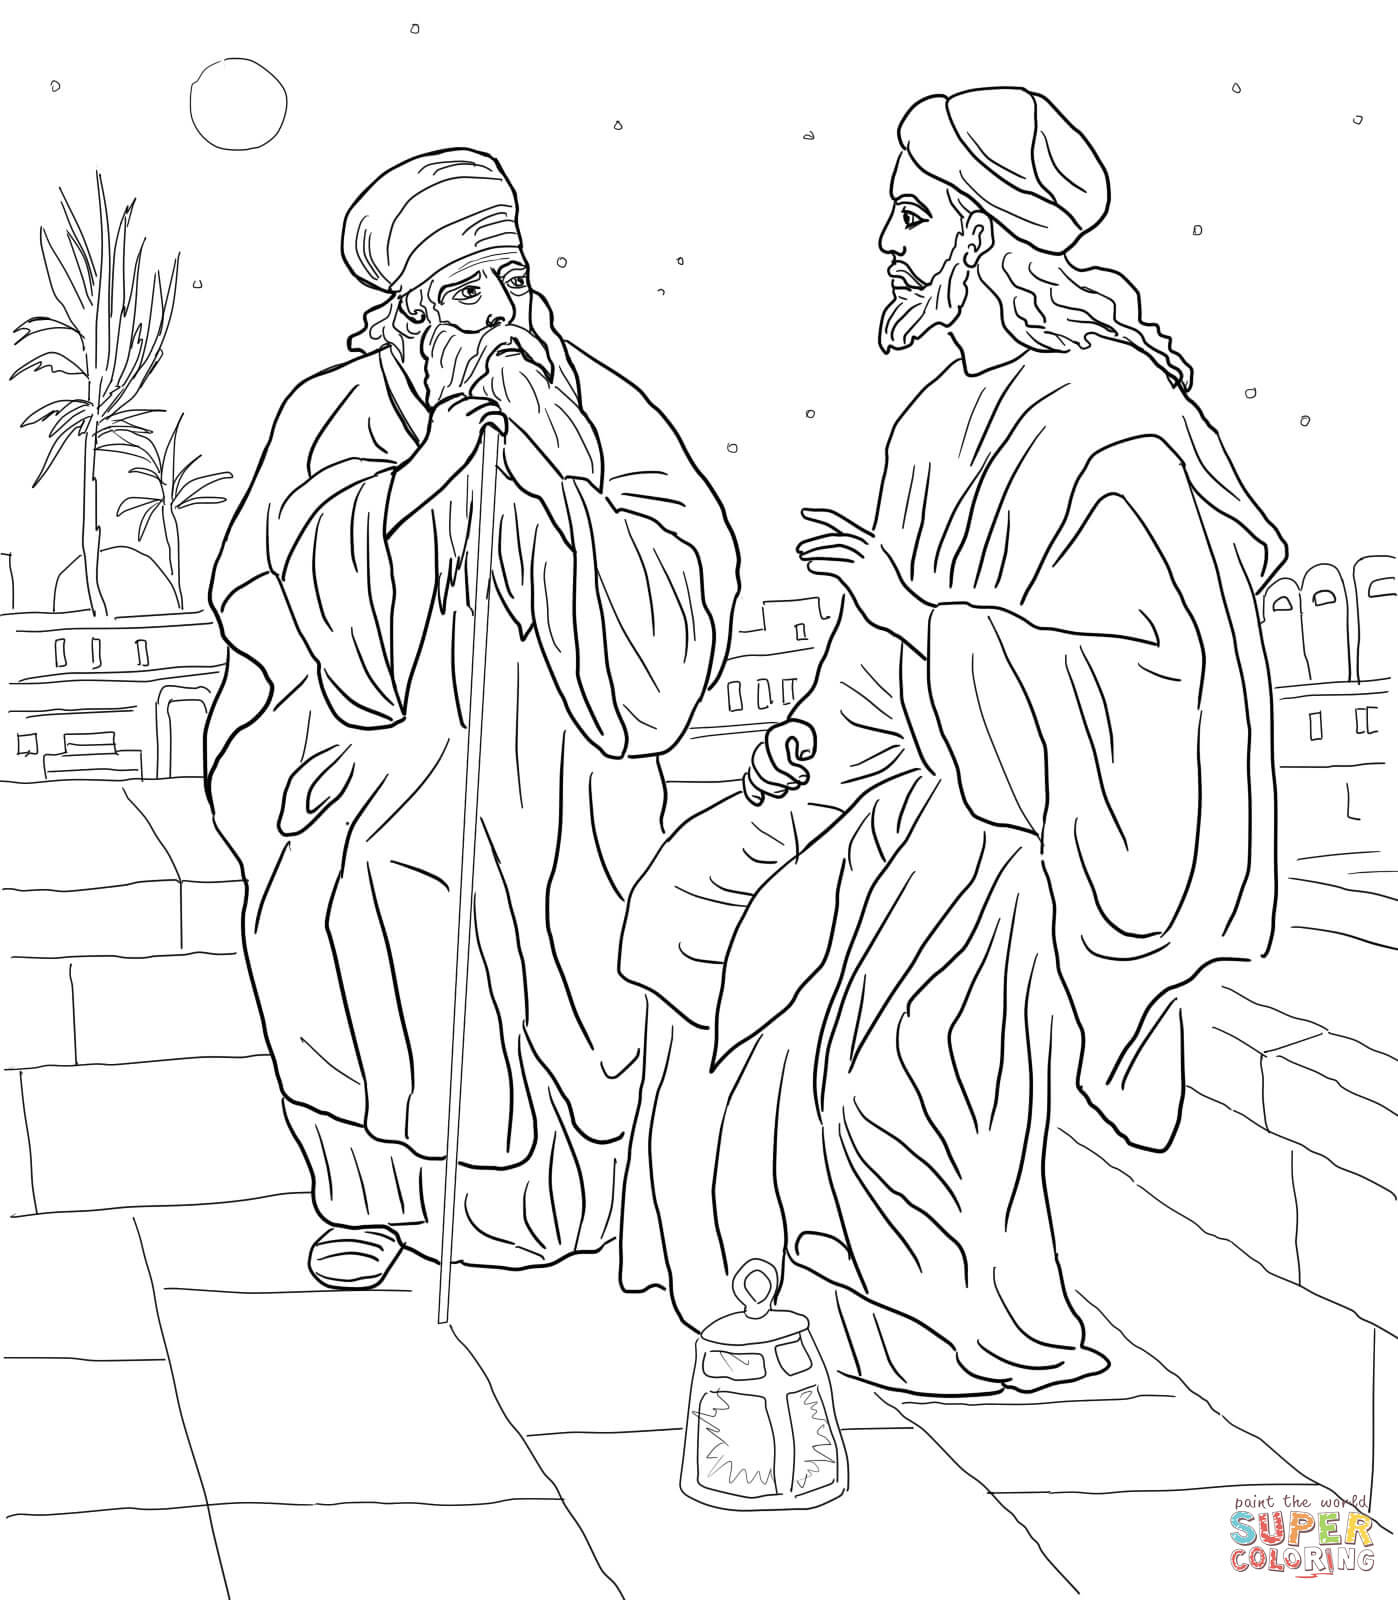 Jesus And Nicodemus Coloring Page | Free Printable Coloring